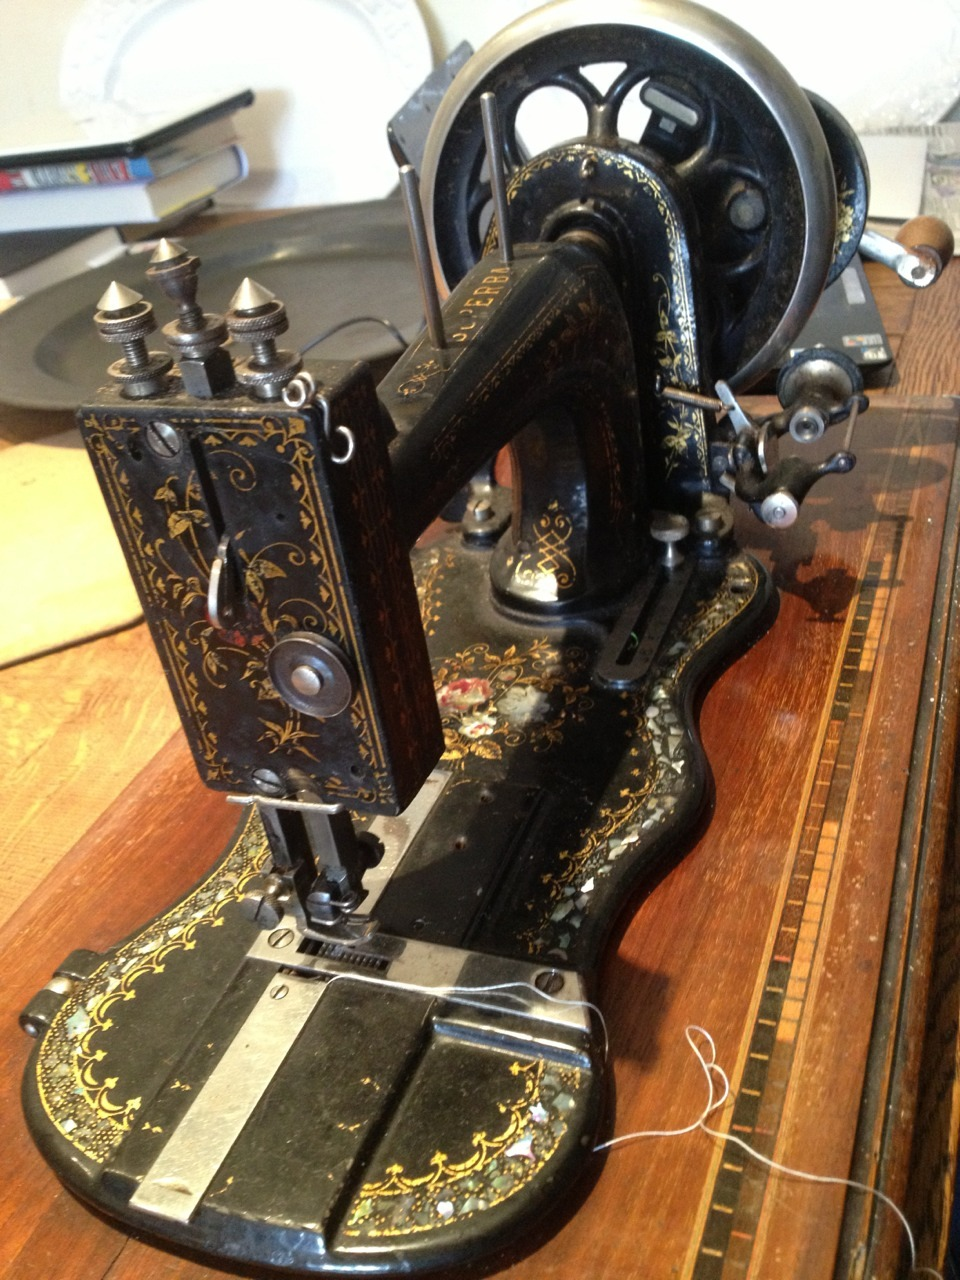 castironandcanvas:  New (150 years old!) sewing machine